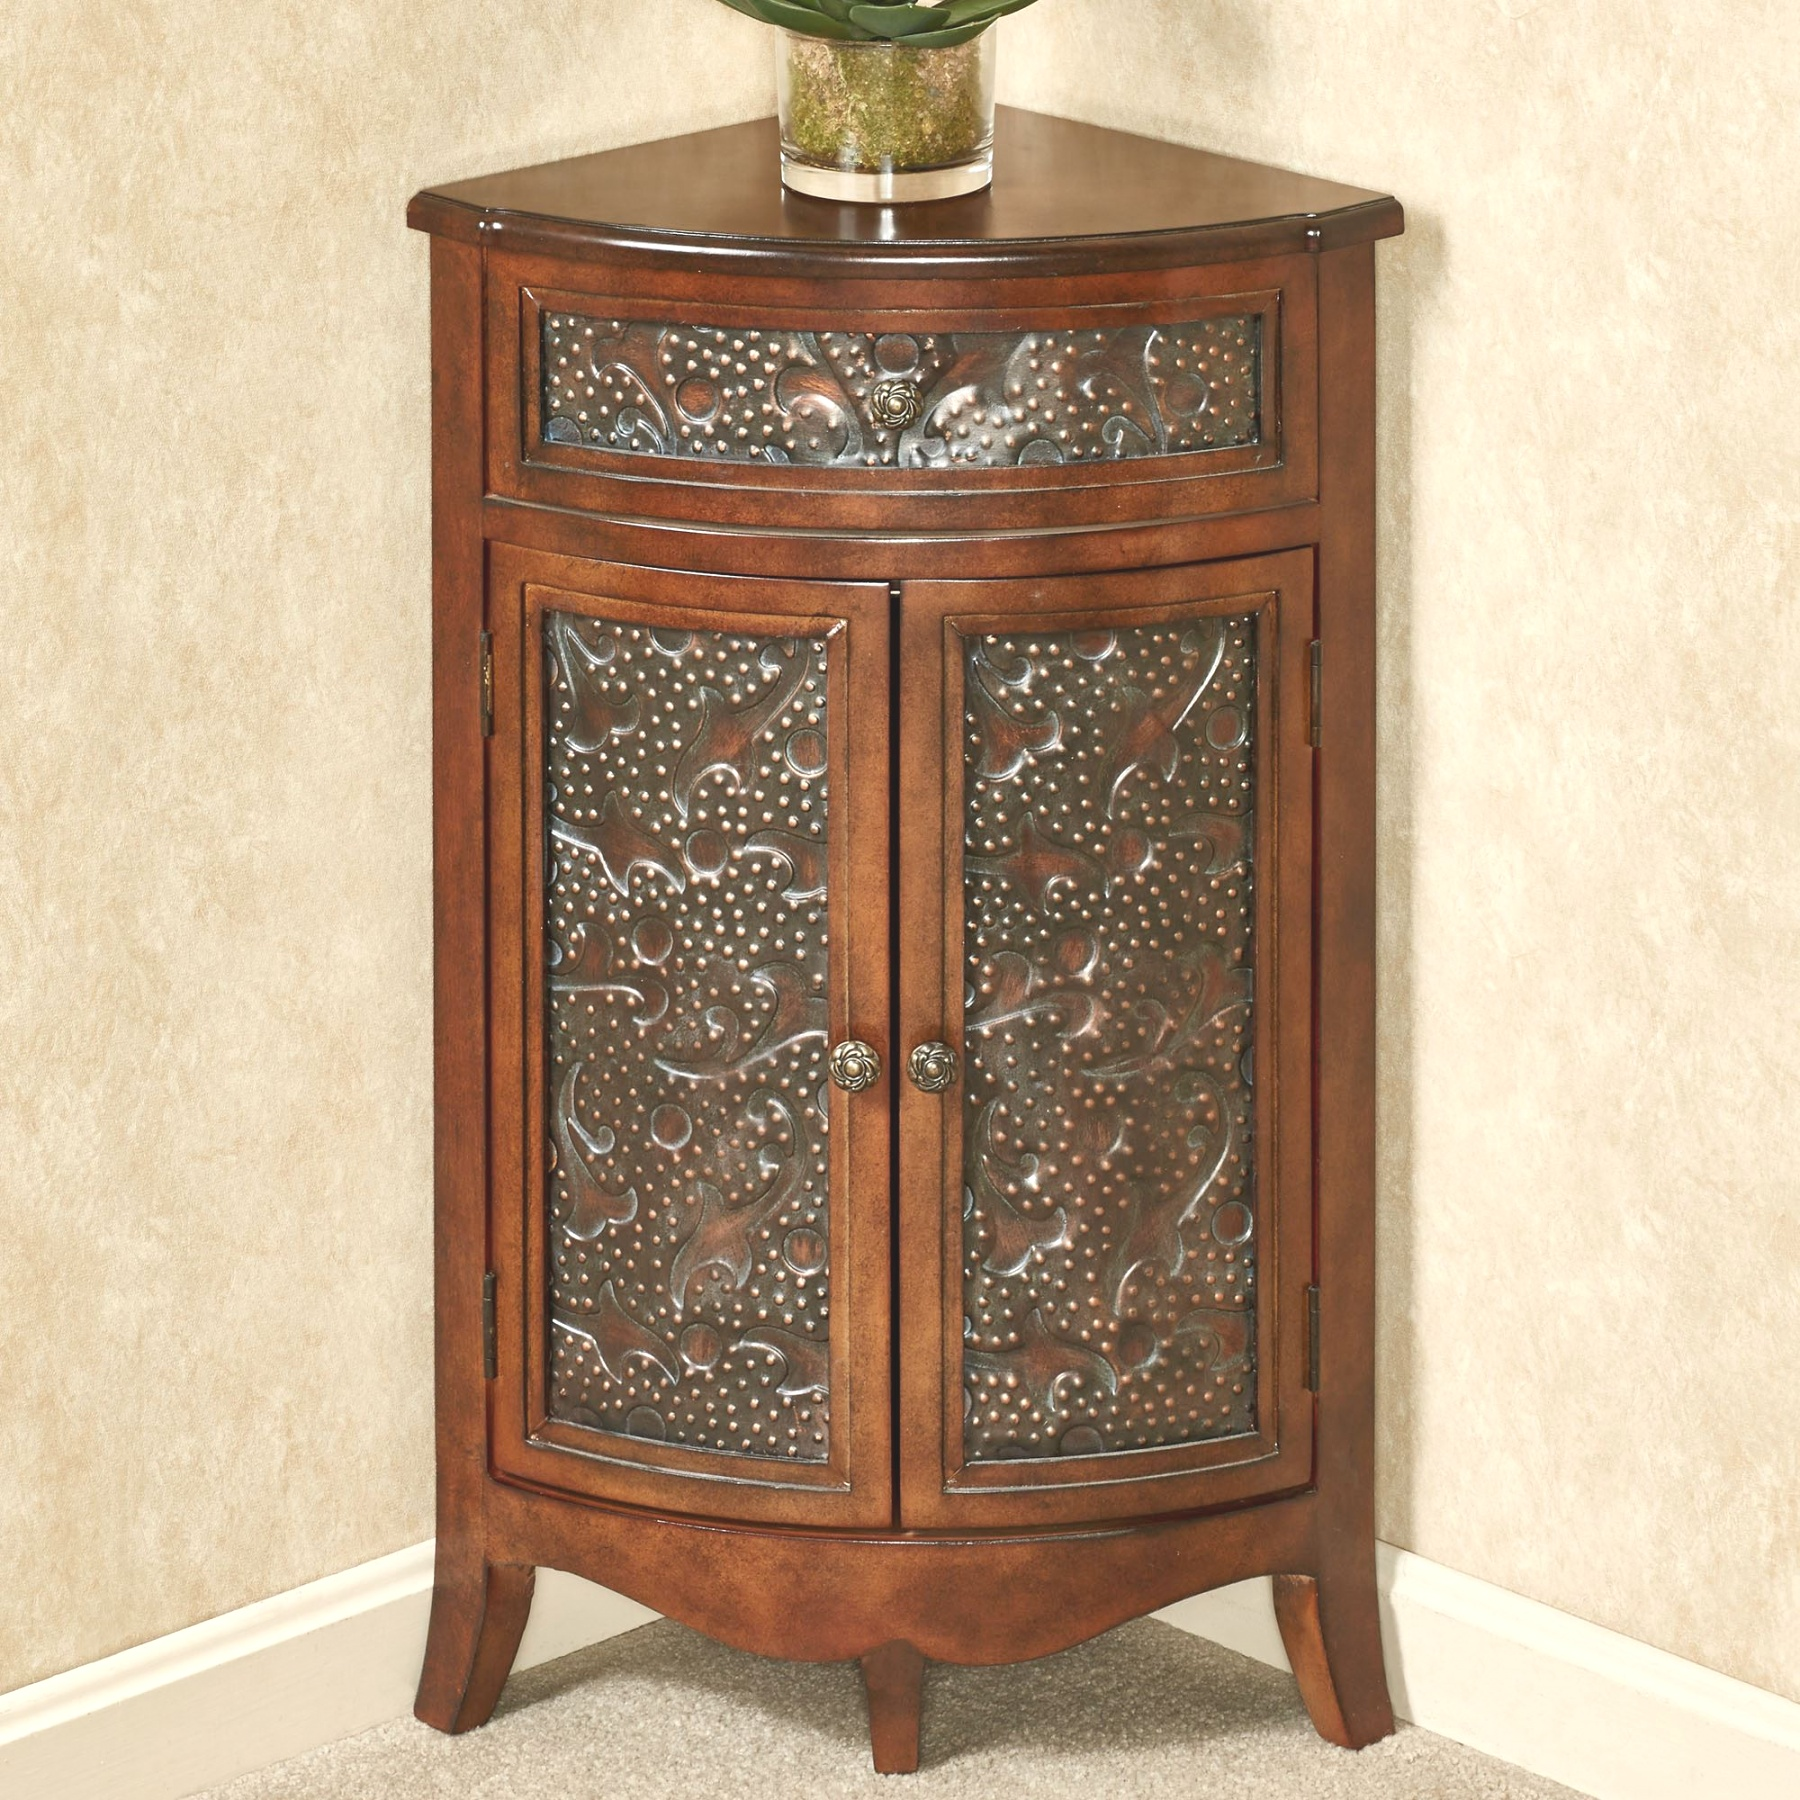 lombardy corner storage accent cabinet furniture original resolution upholstered arm chair tall narrow entryway table slide bolt lamps and shades garage cabinets all glass end